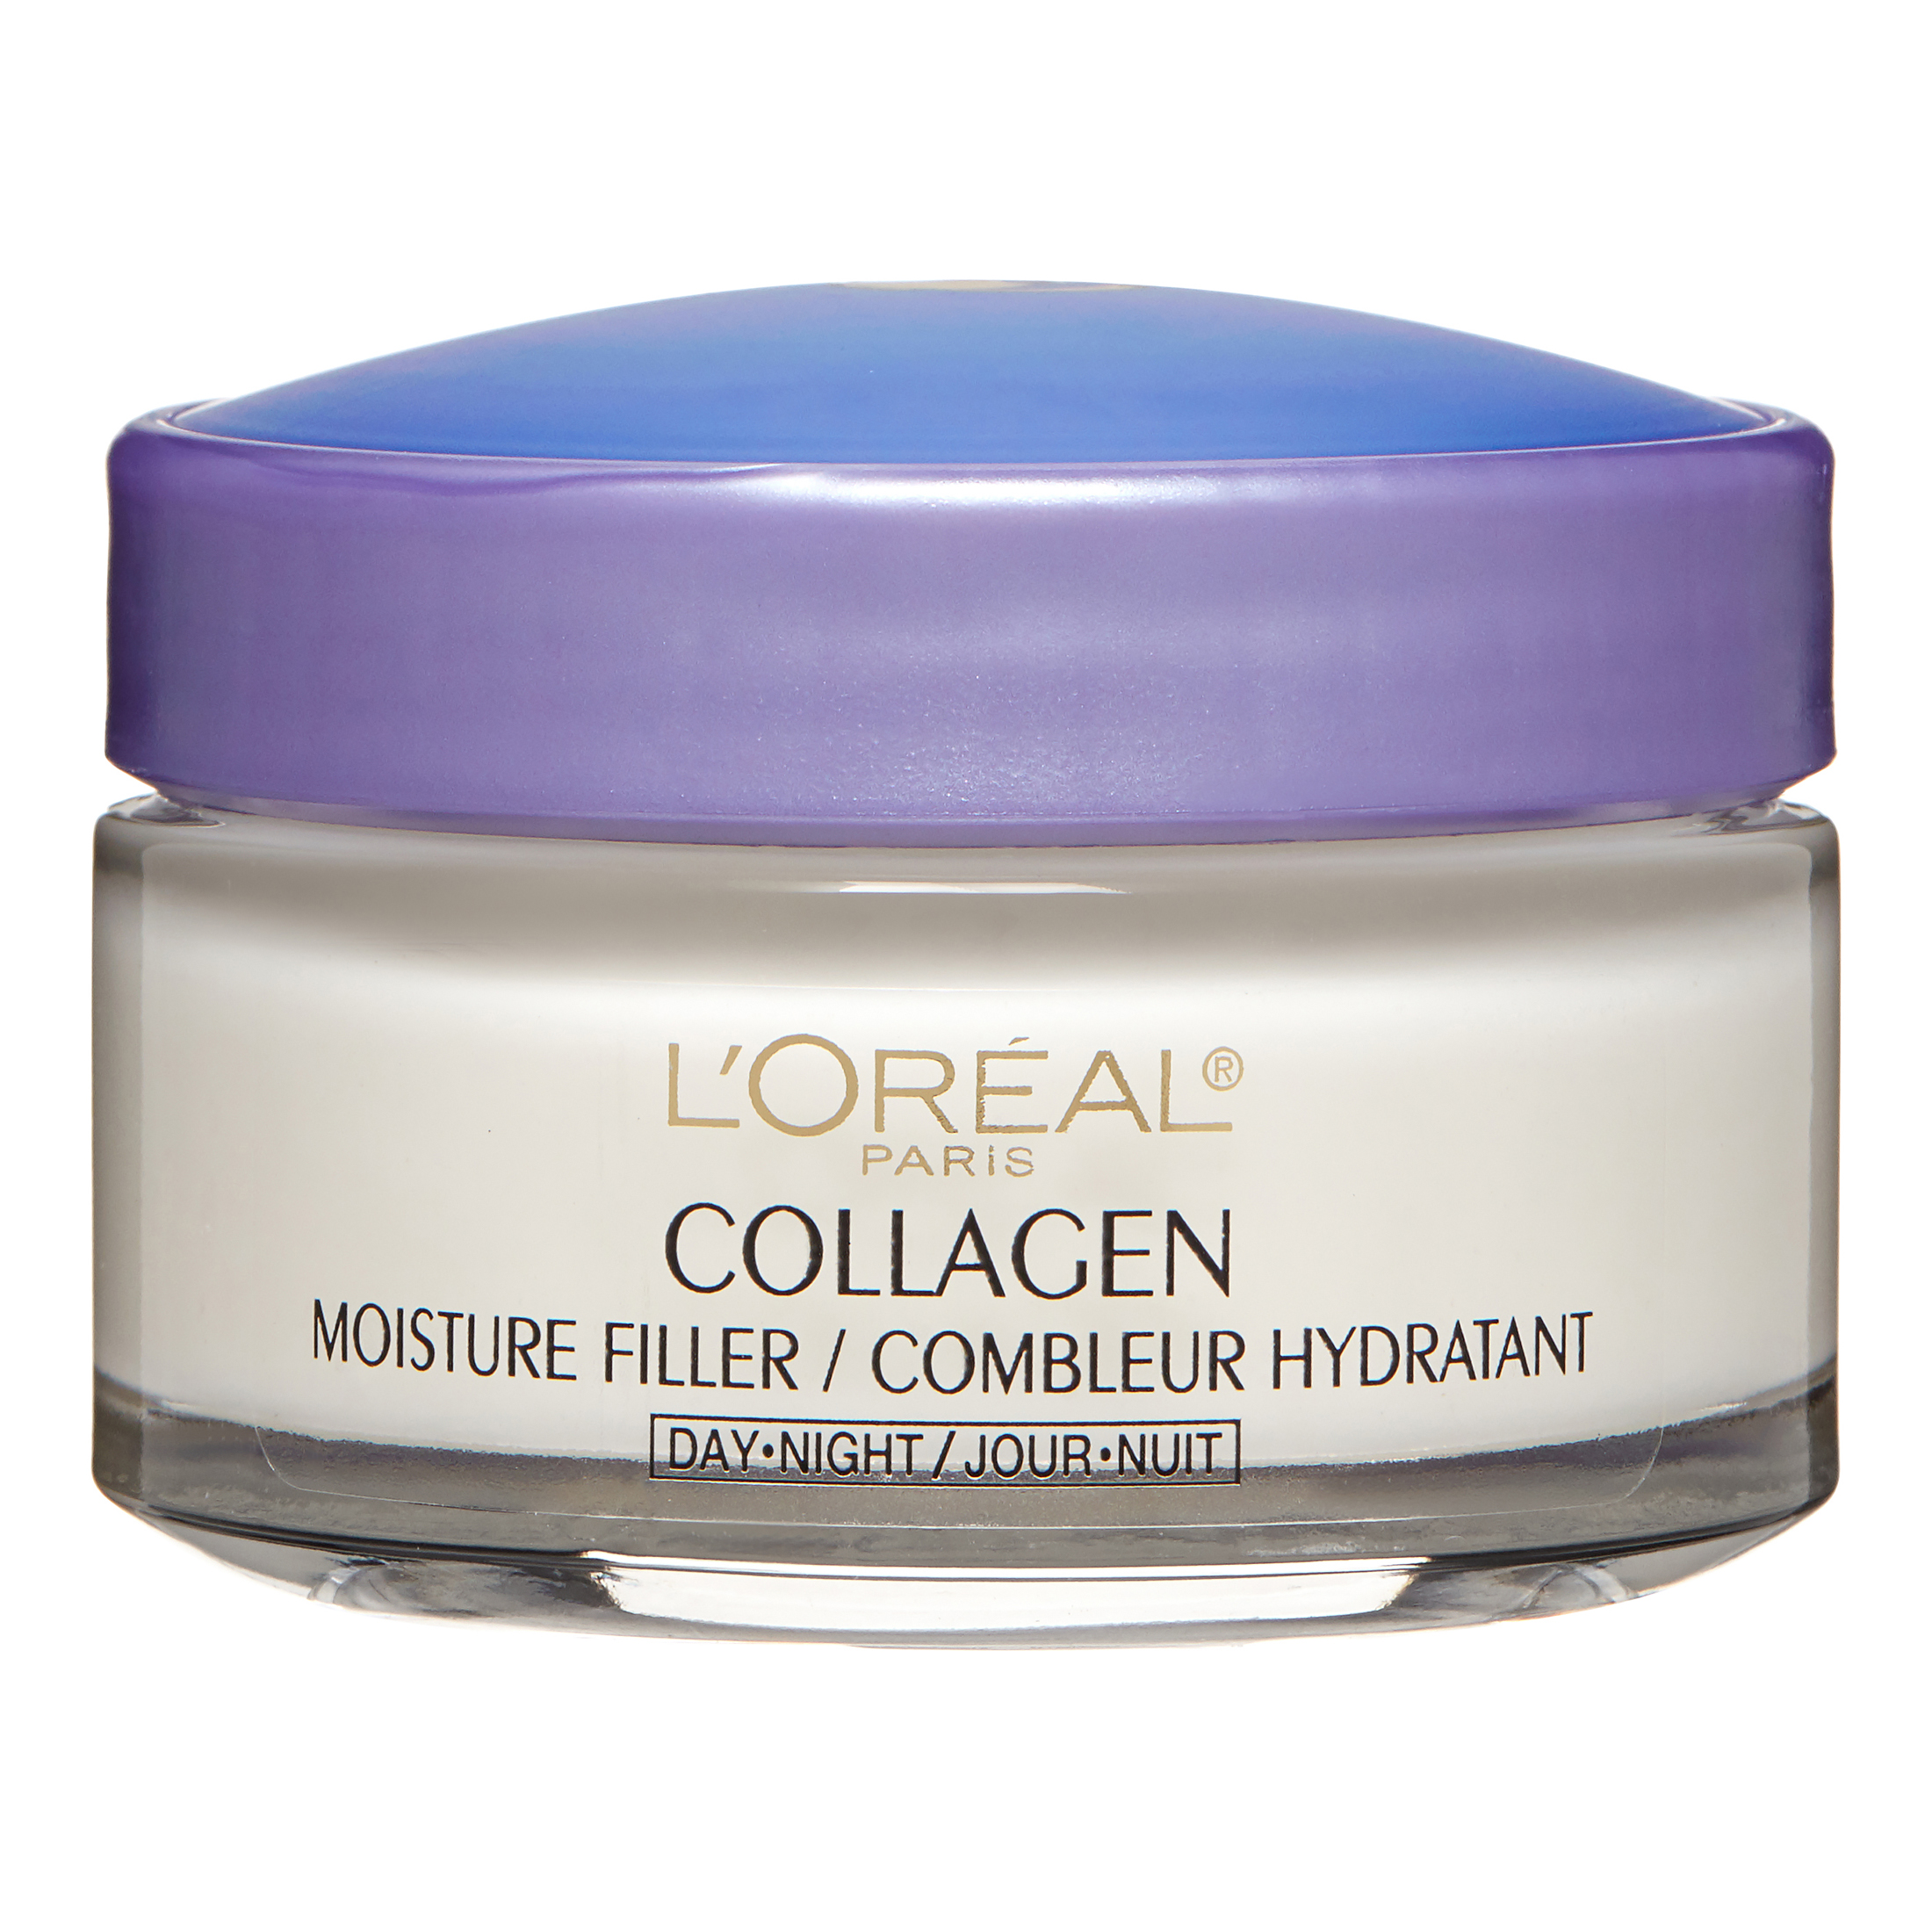 L'Oréal Paris Collagen Moisture Filler Night Creme